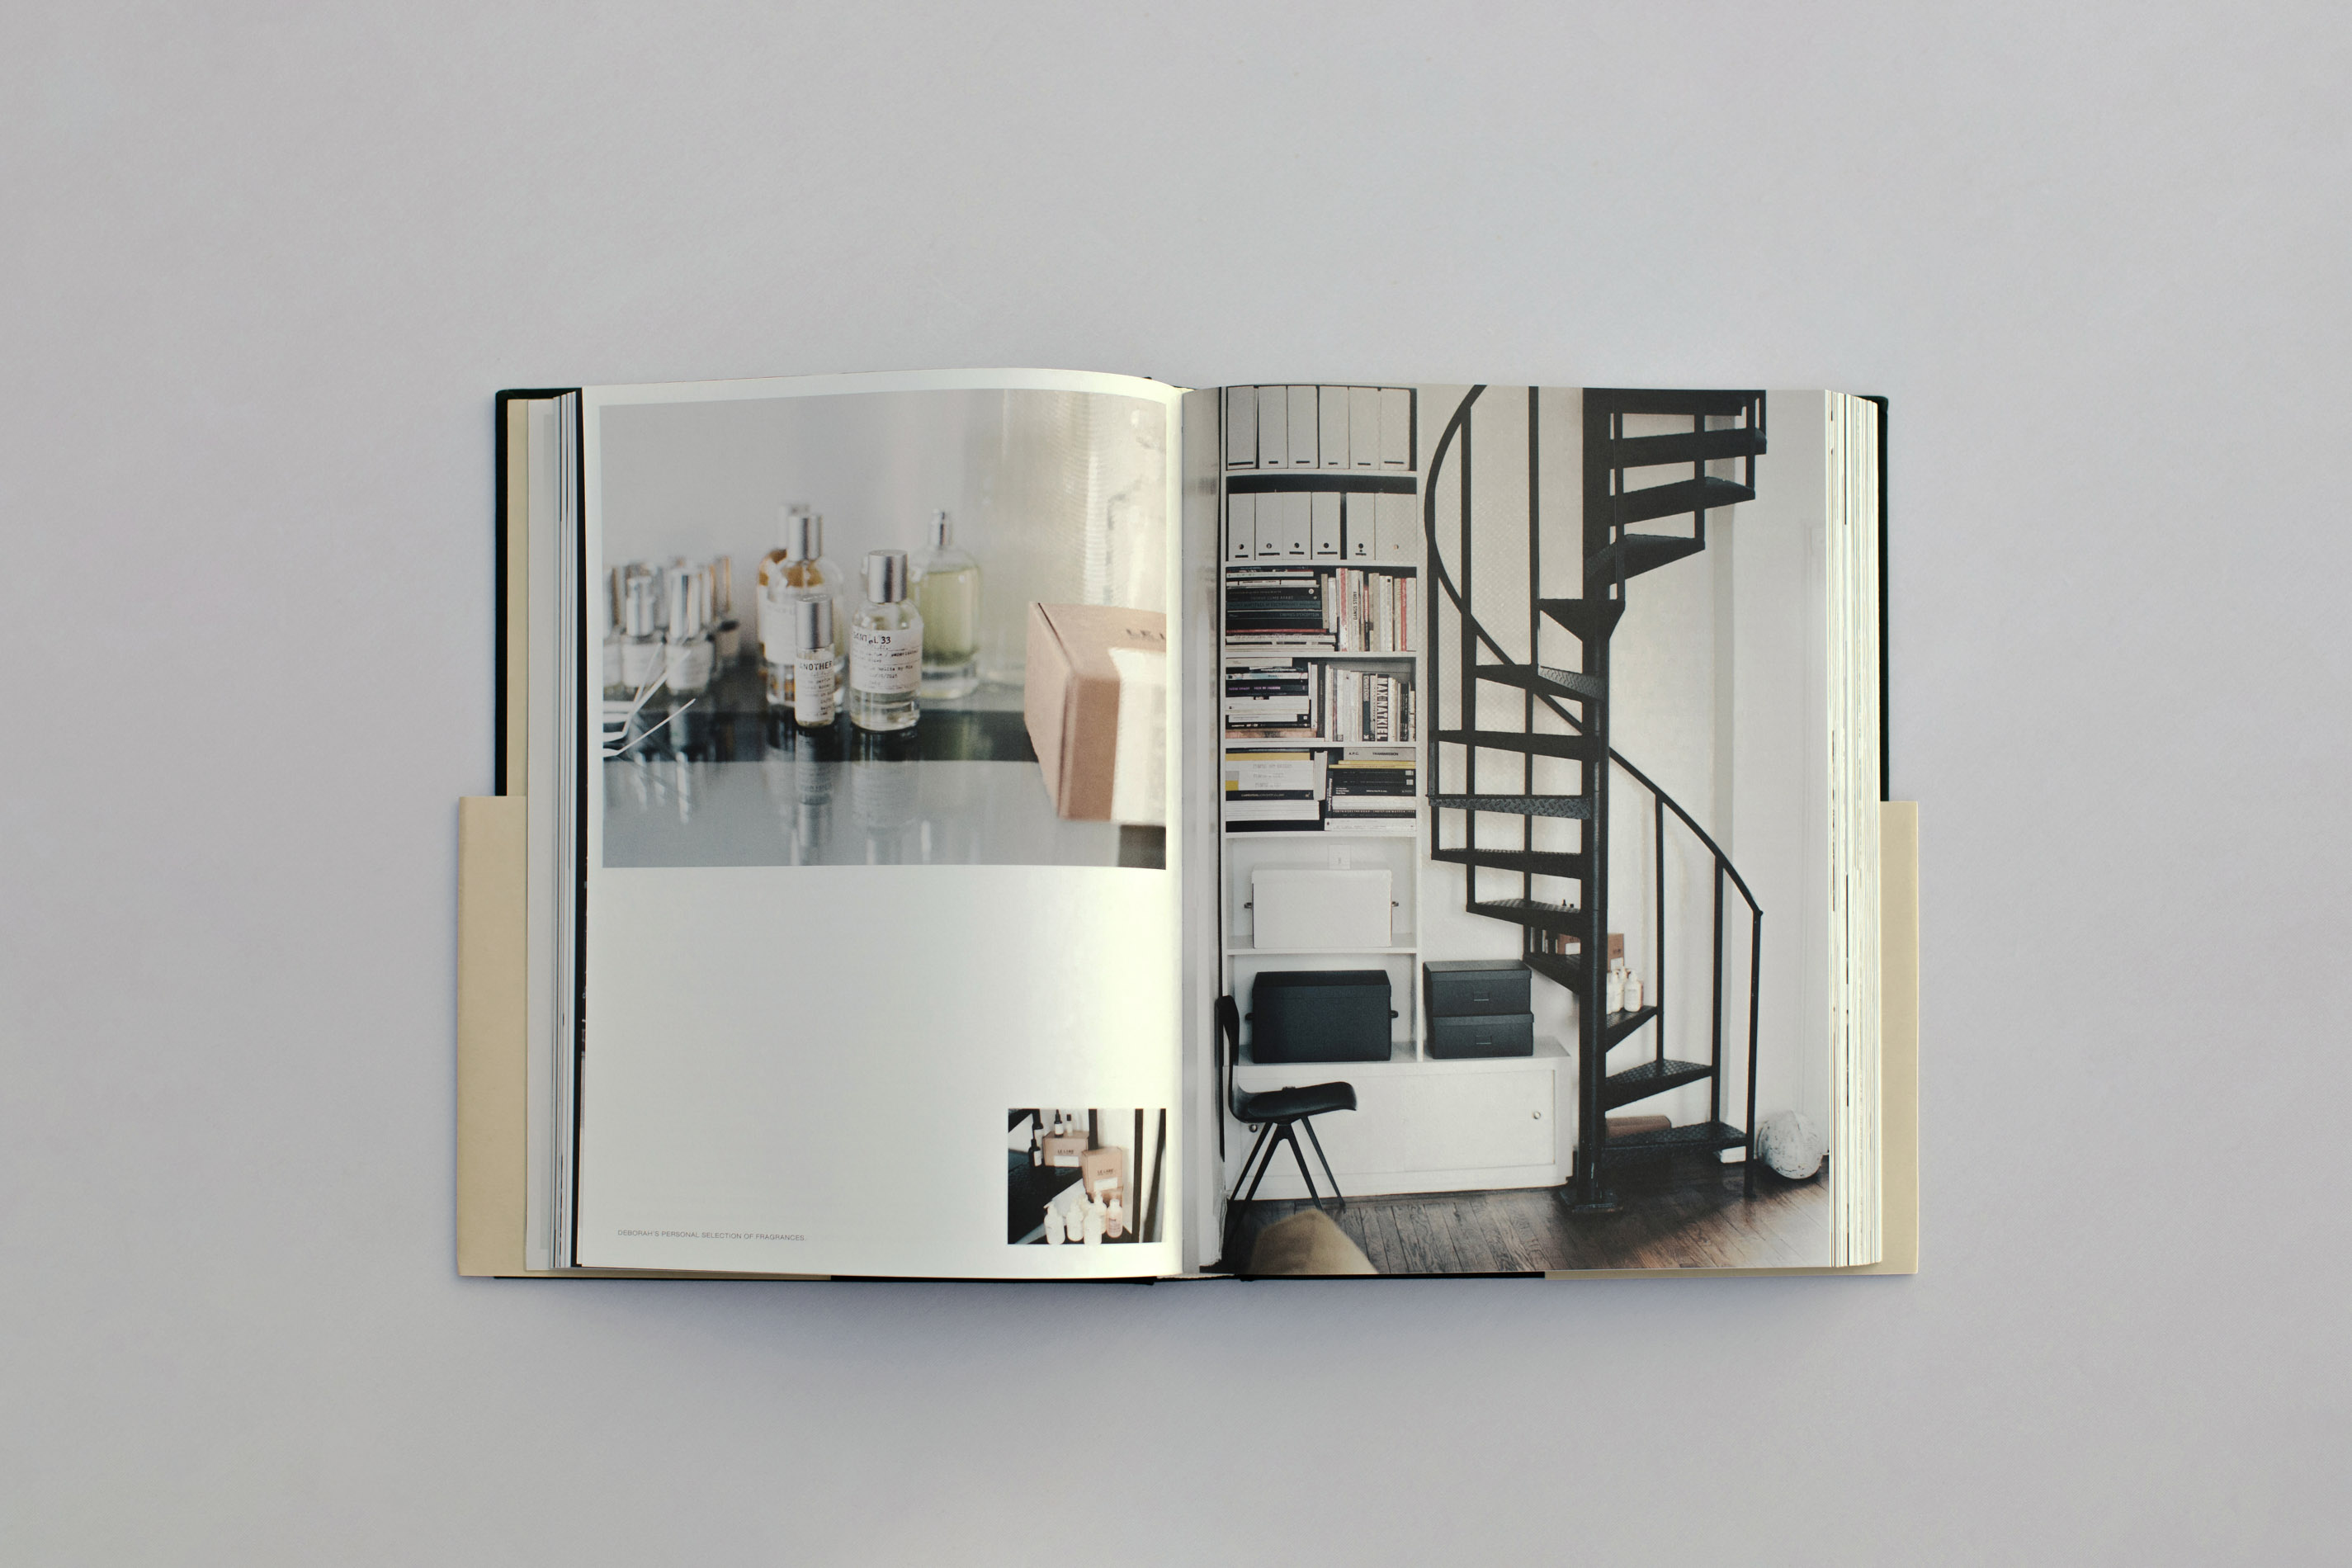 Faculty Department Volume Two, Faculty Department, Justin Chung, Book, Kodak, Le Labo Fragrances, Brooklyn, NY, Deborah Royer